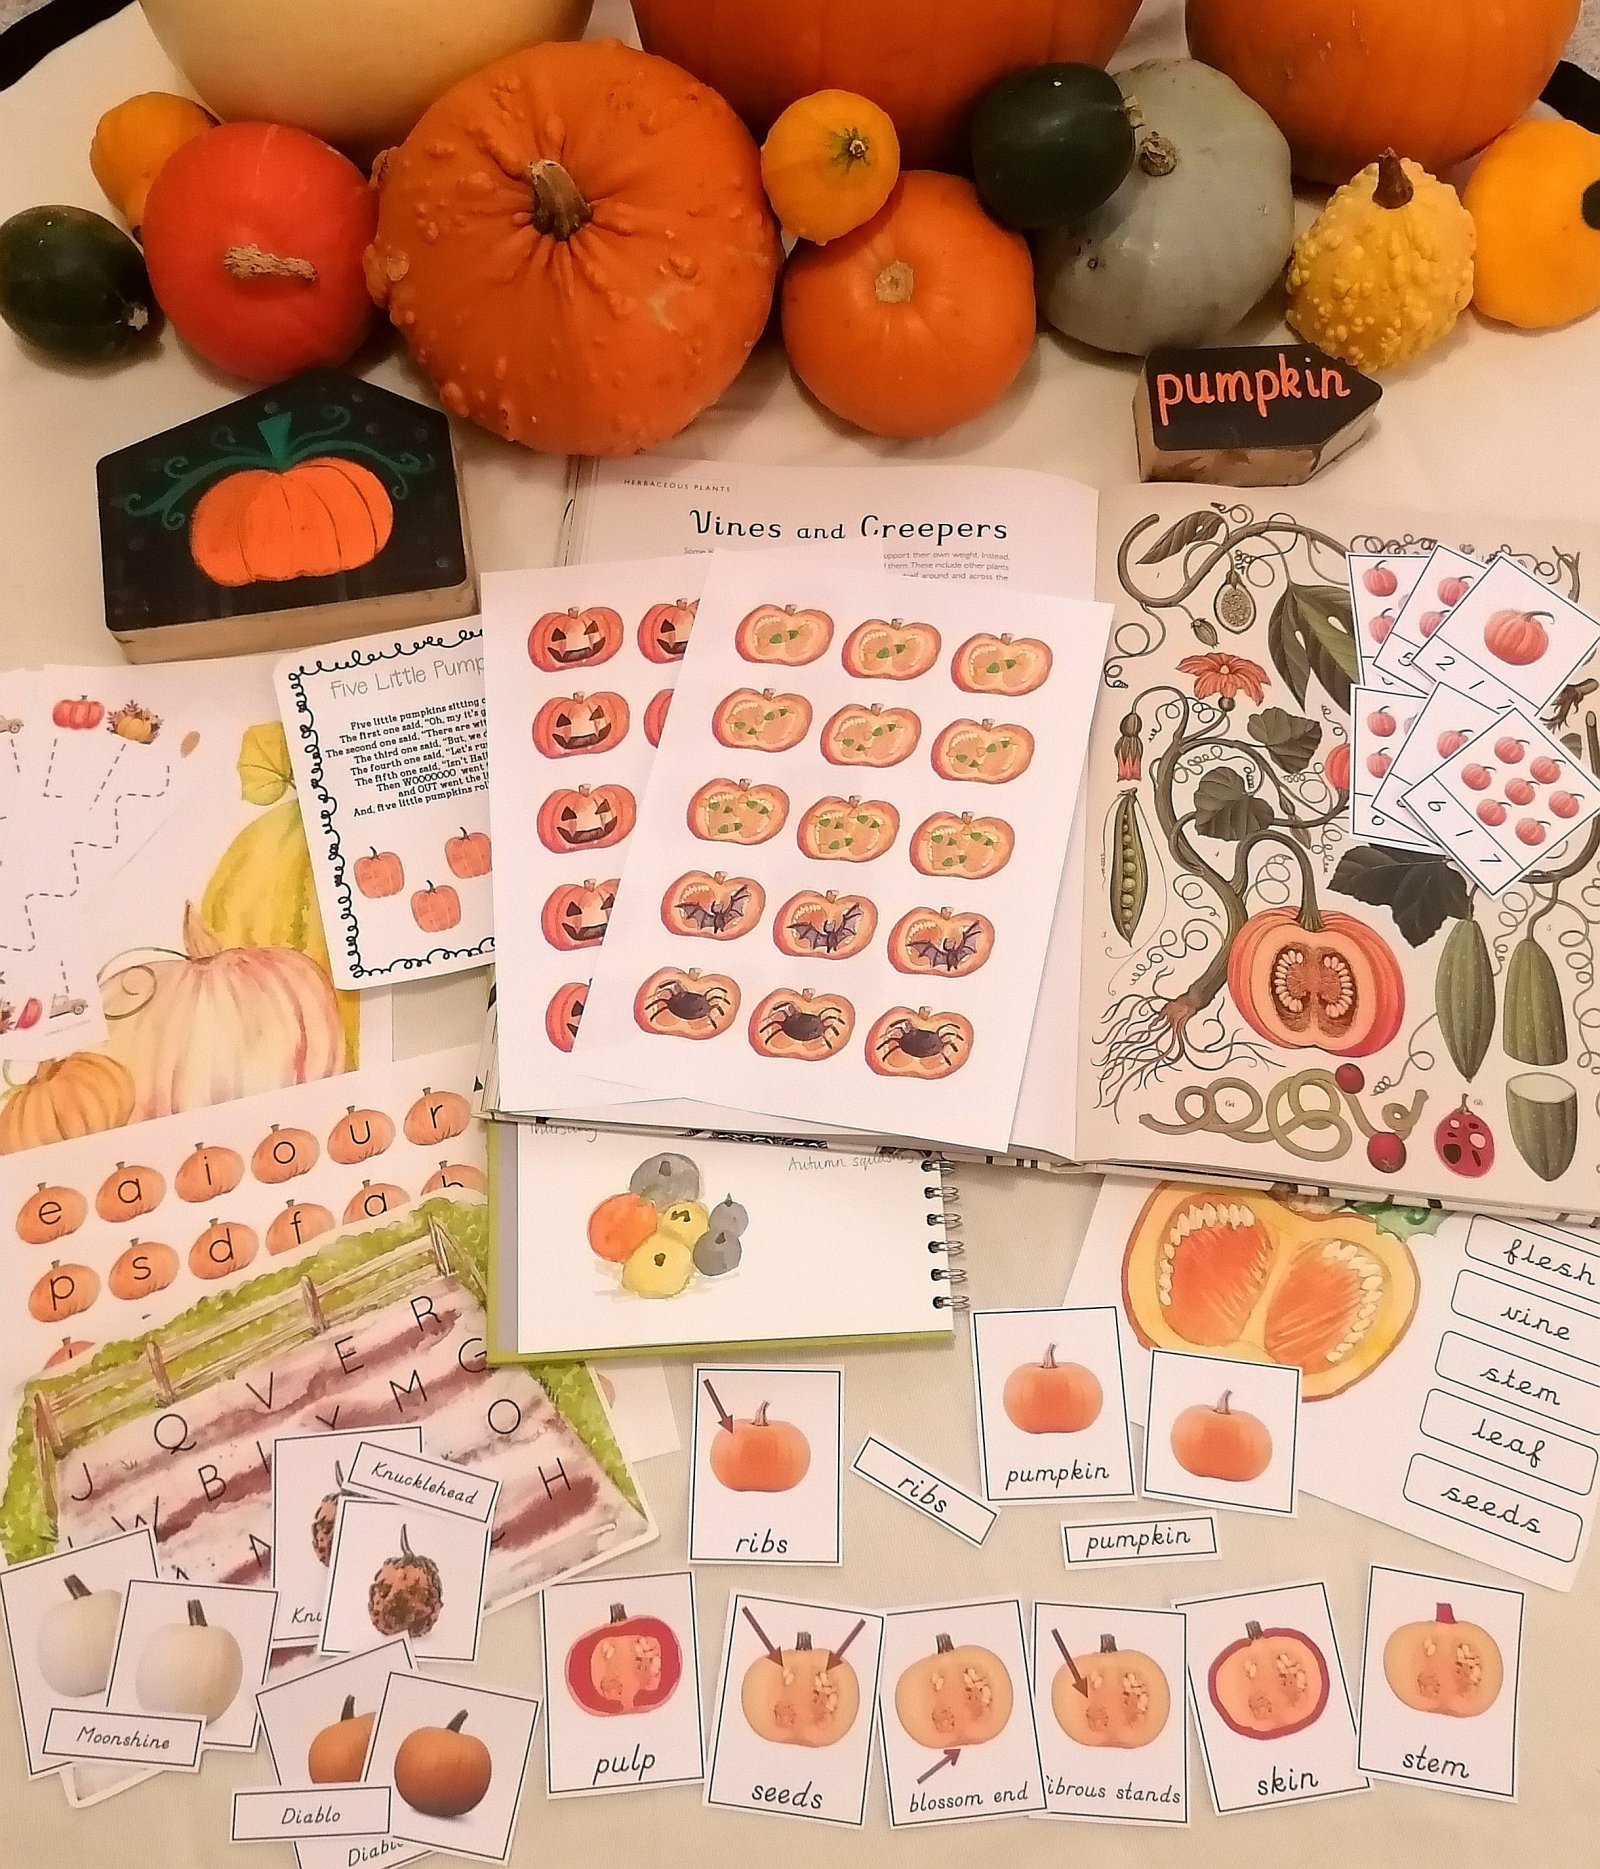 pumpkins - pumpkin week - enwc - exploring nature with children - nature play - learning through play - play matters - vines - creepers - nature journalling - recipes - craft ideas